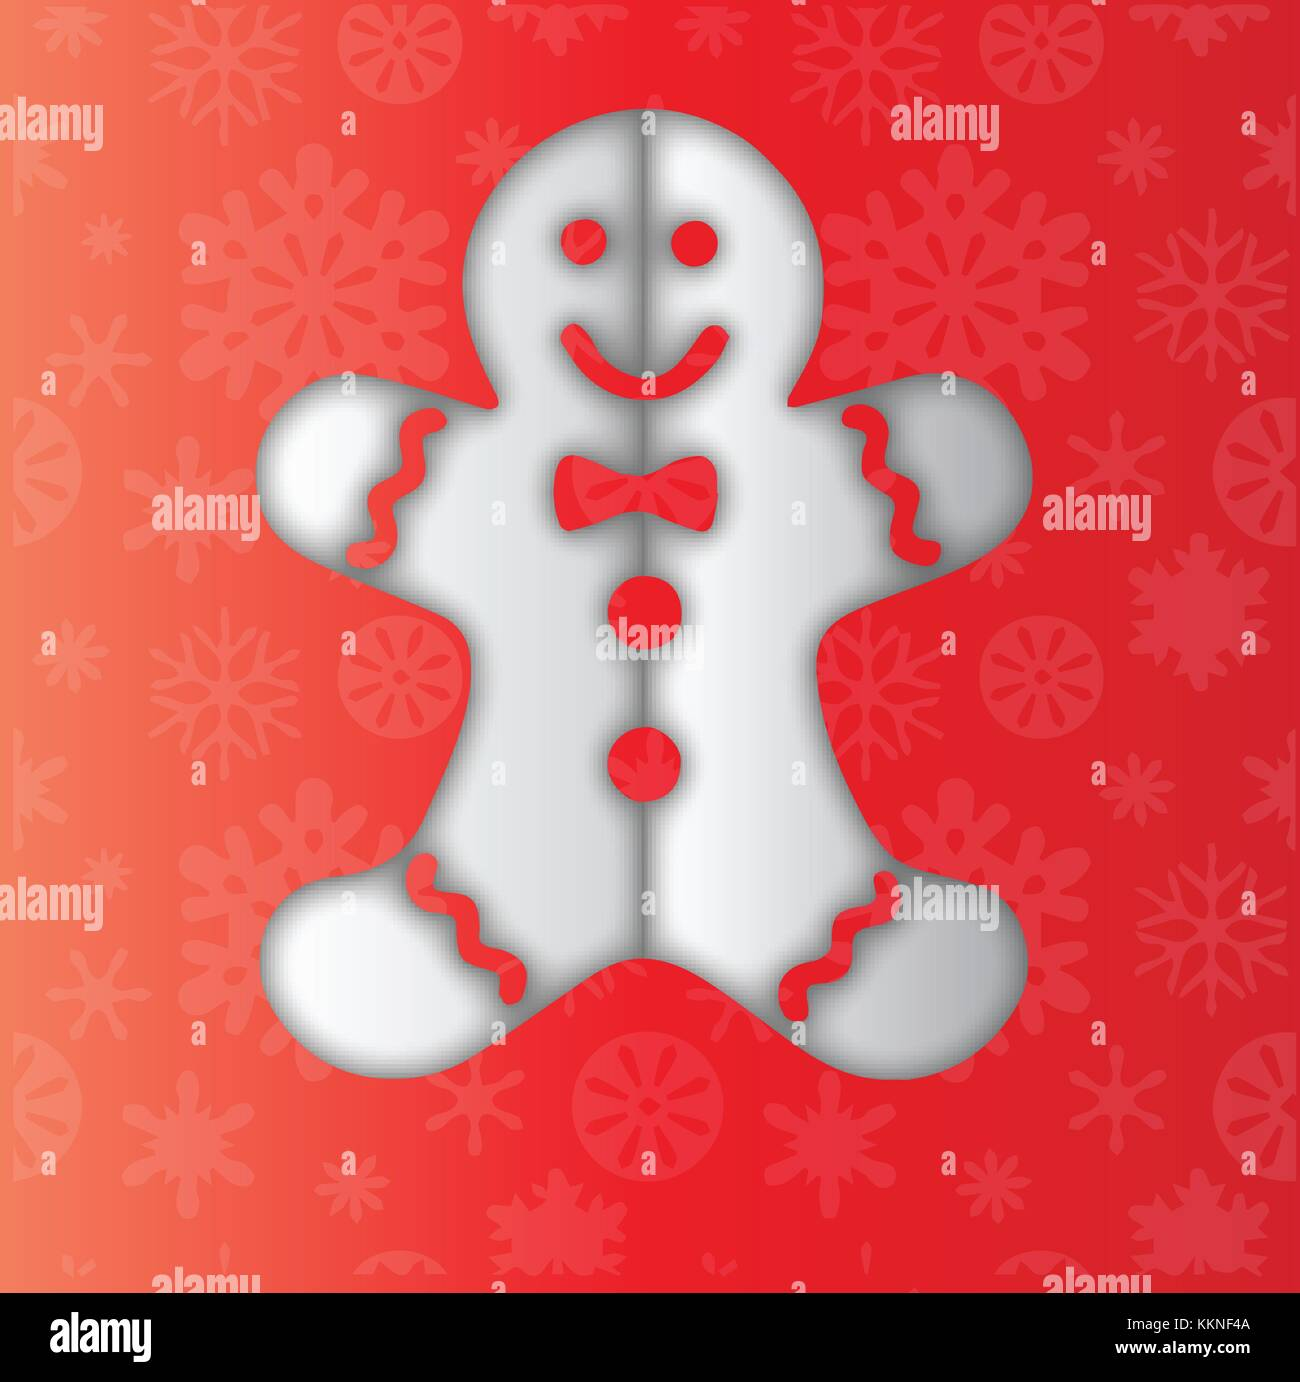 Gingerbread Man Clipart - Stock Image